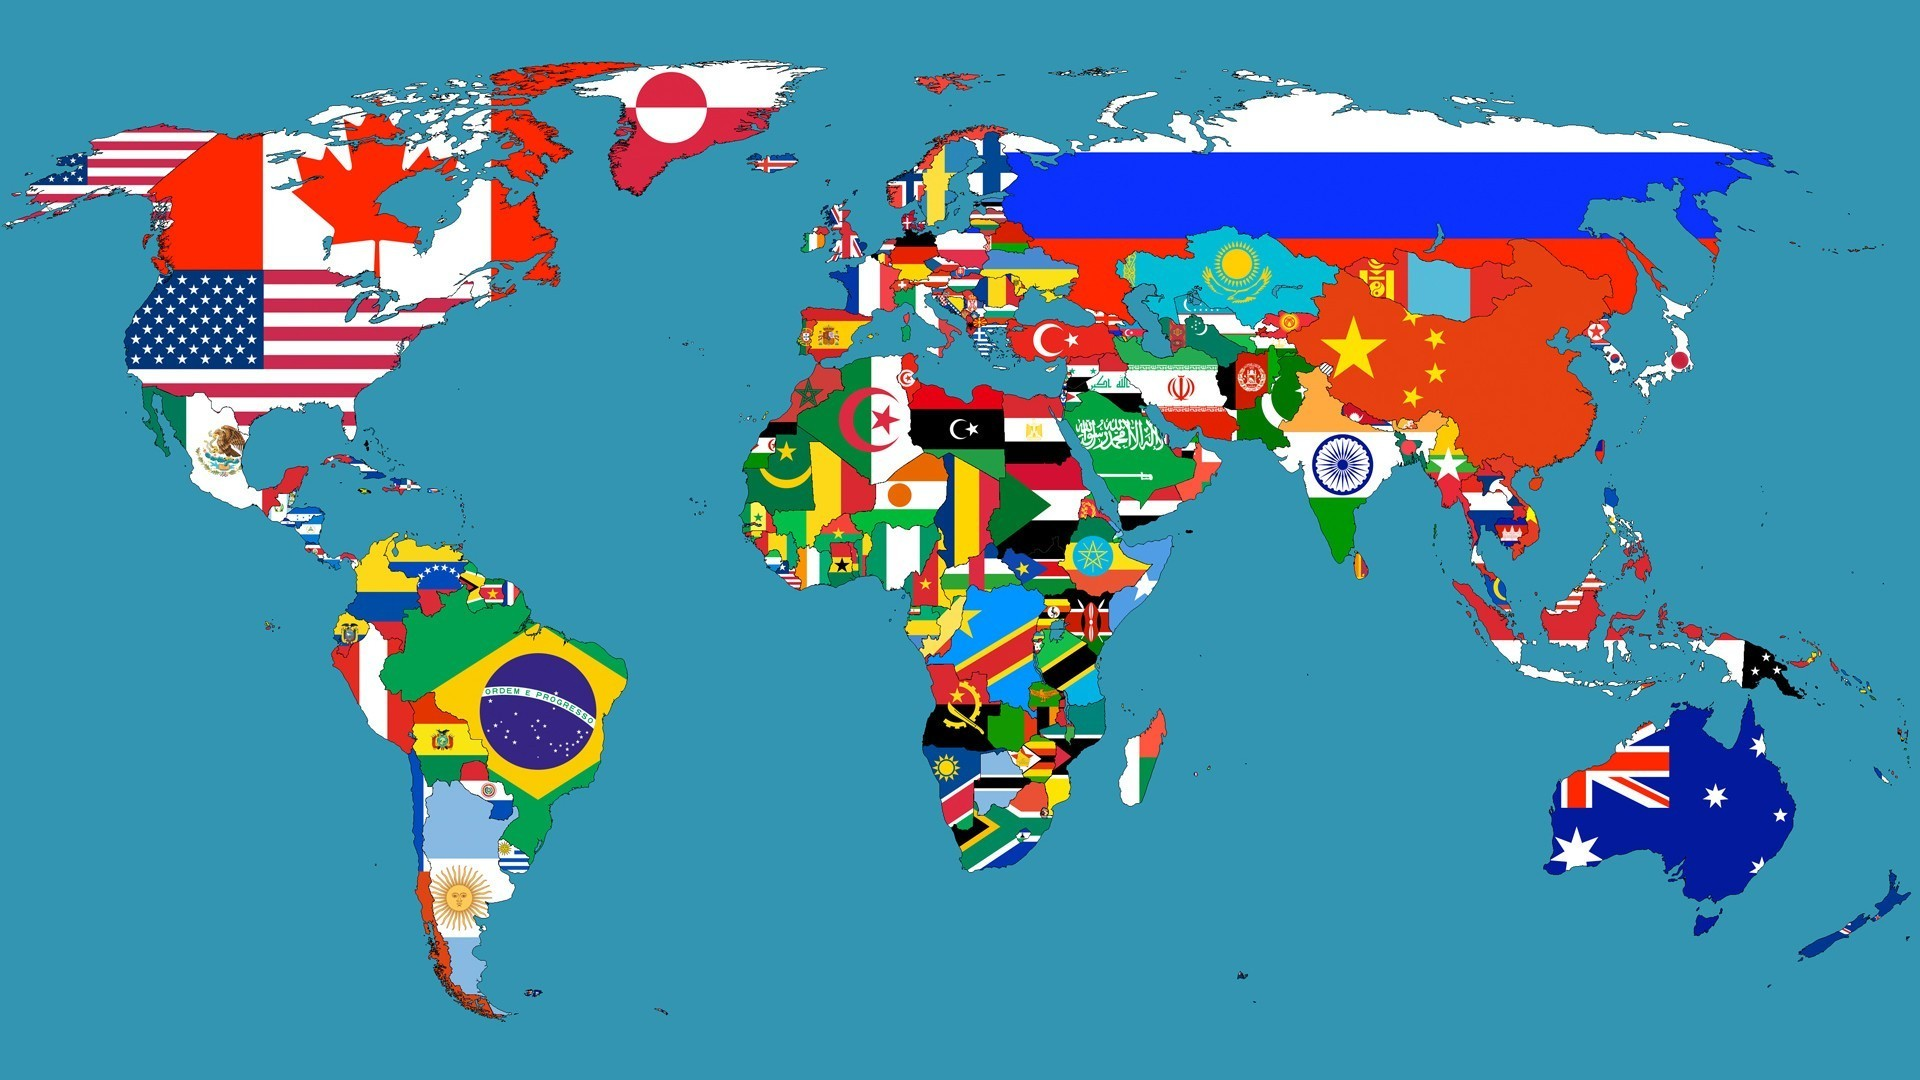 47+] World Map HD Wallpaper on WallpaperSafari